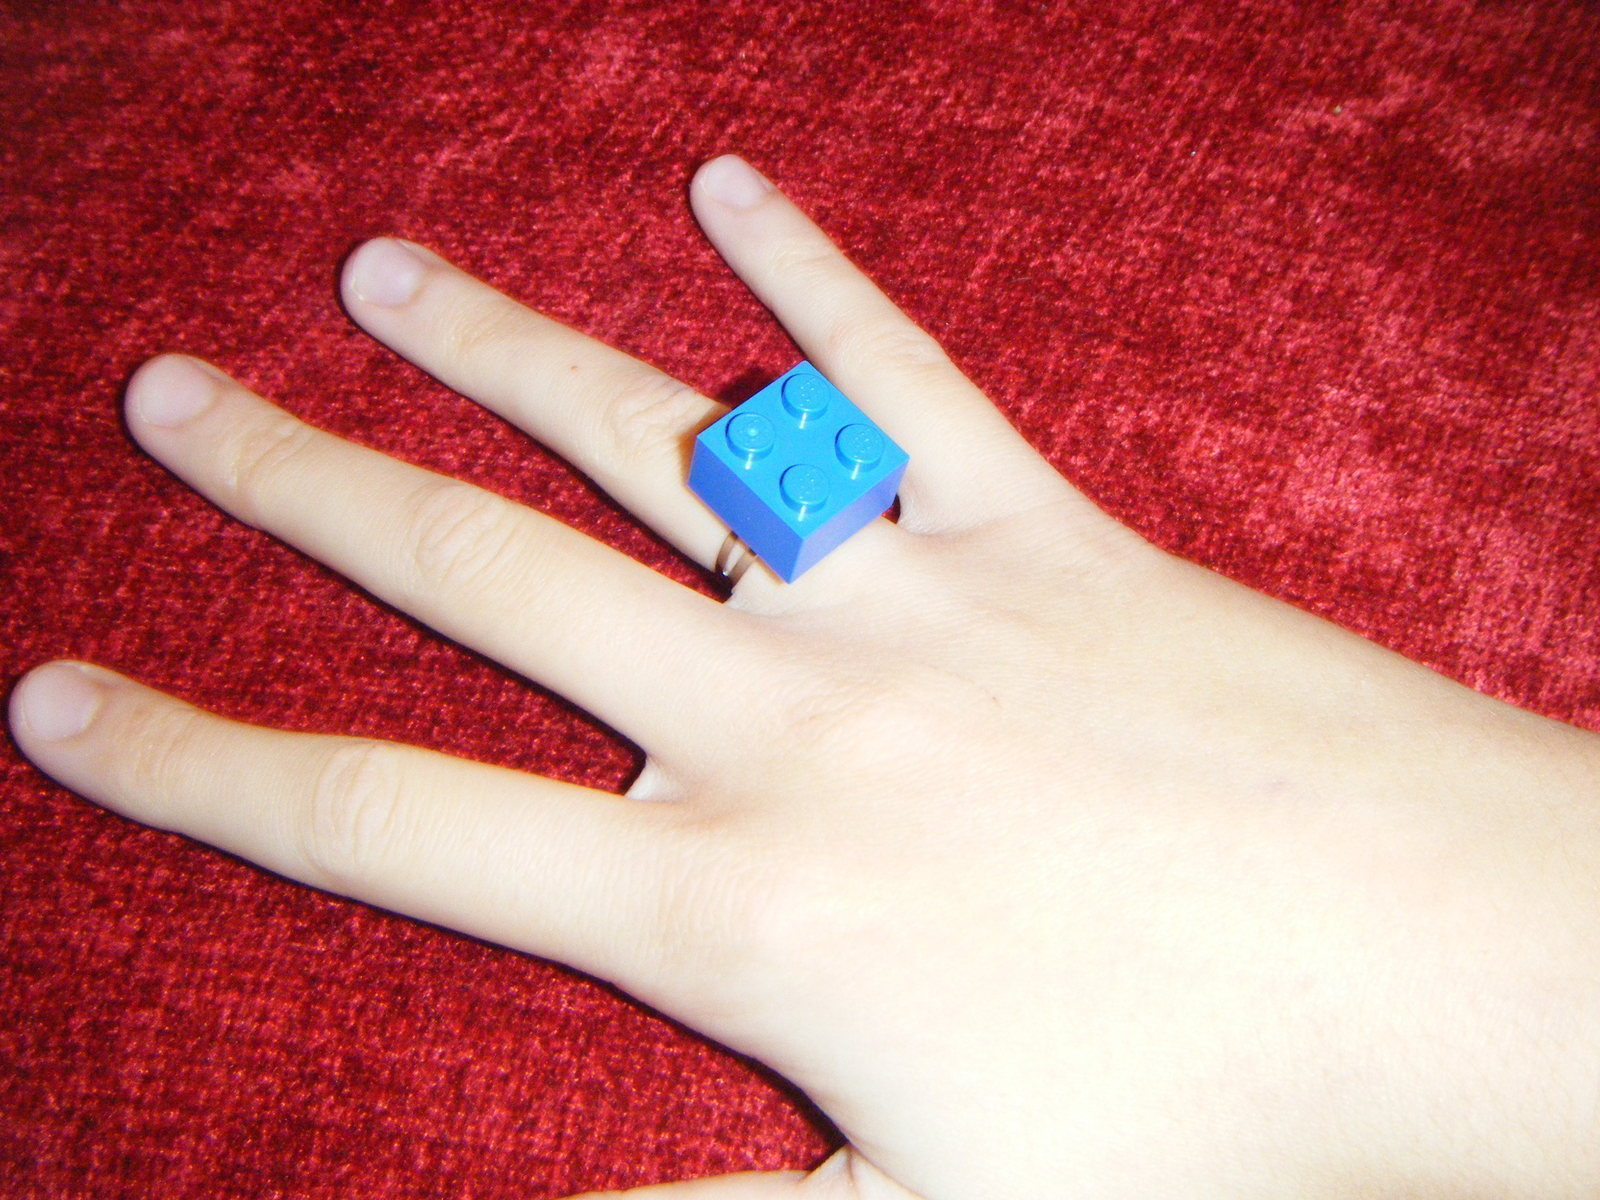 Lego Brick Ring 183 How To Make A Lego Ring 183 How To By Erical